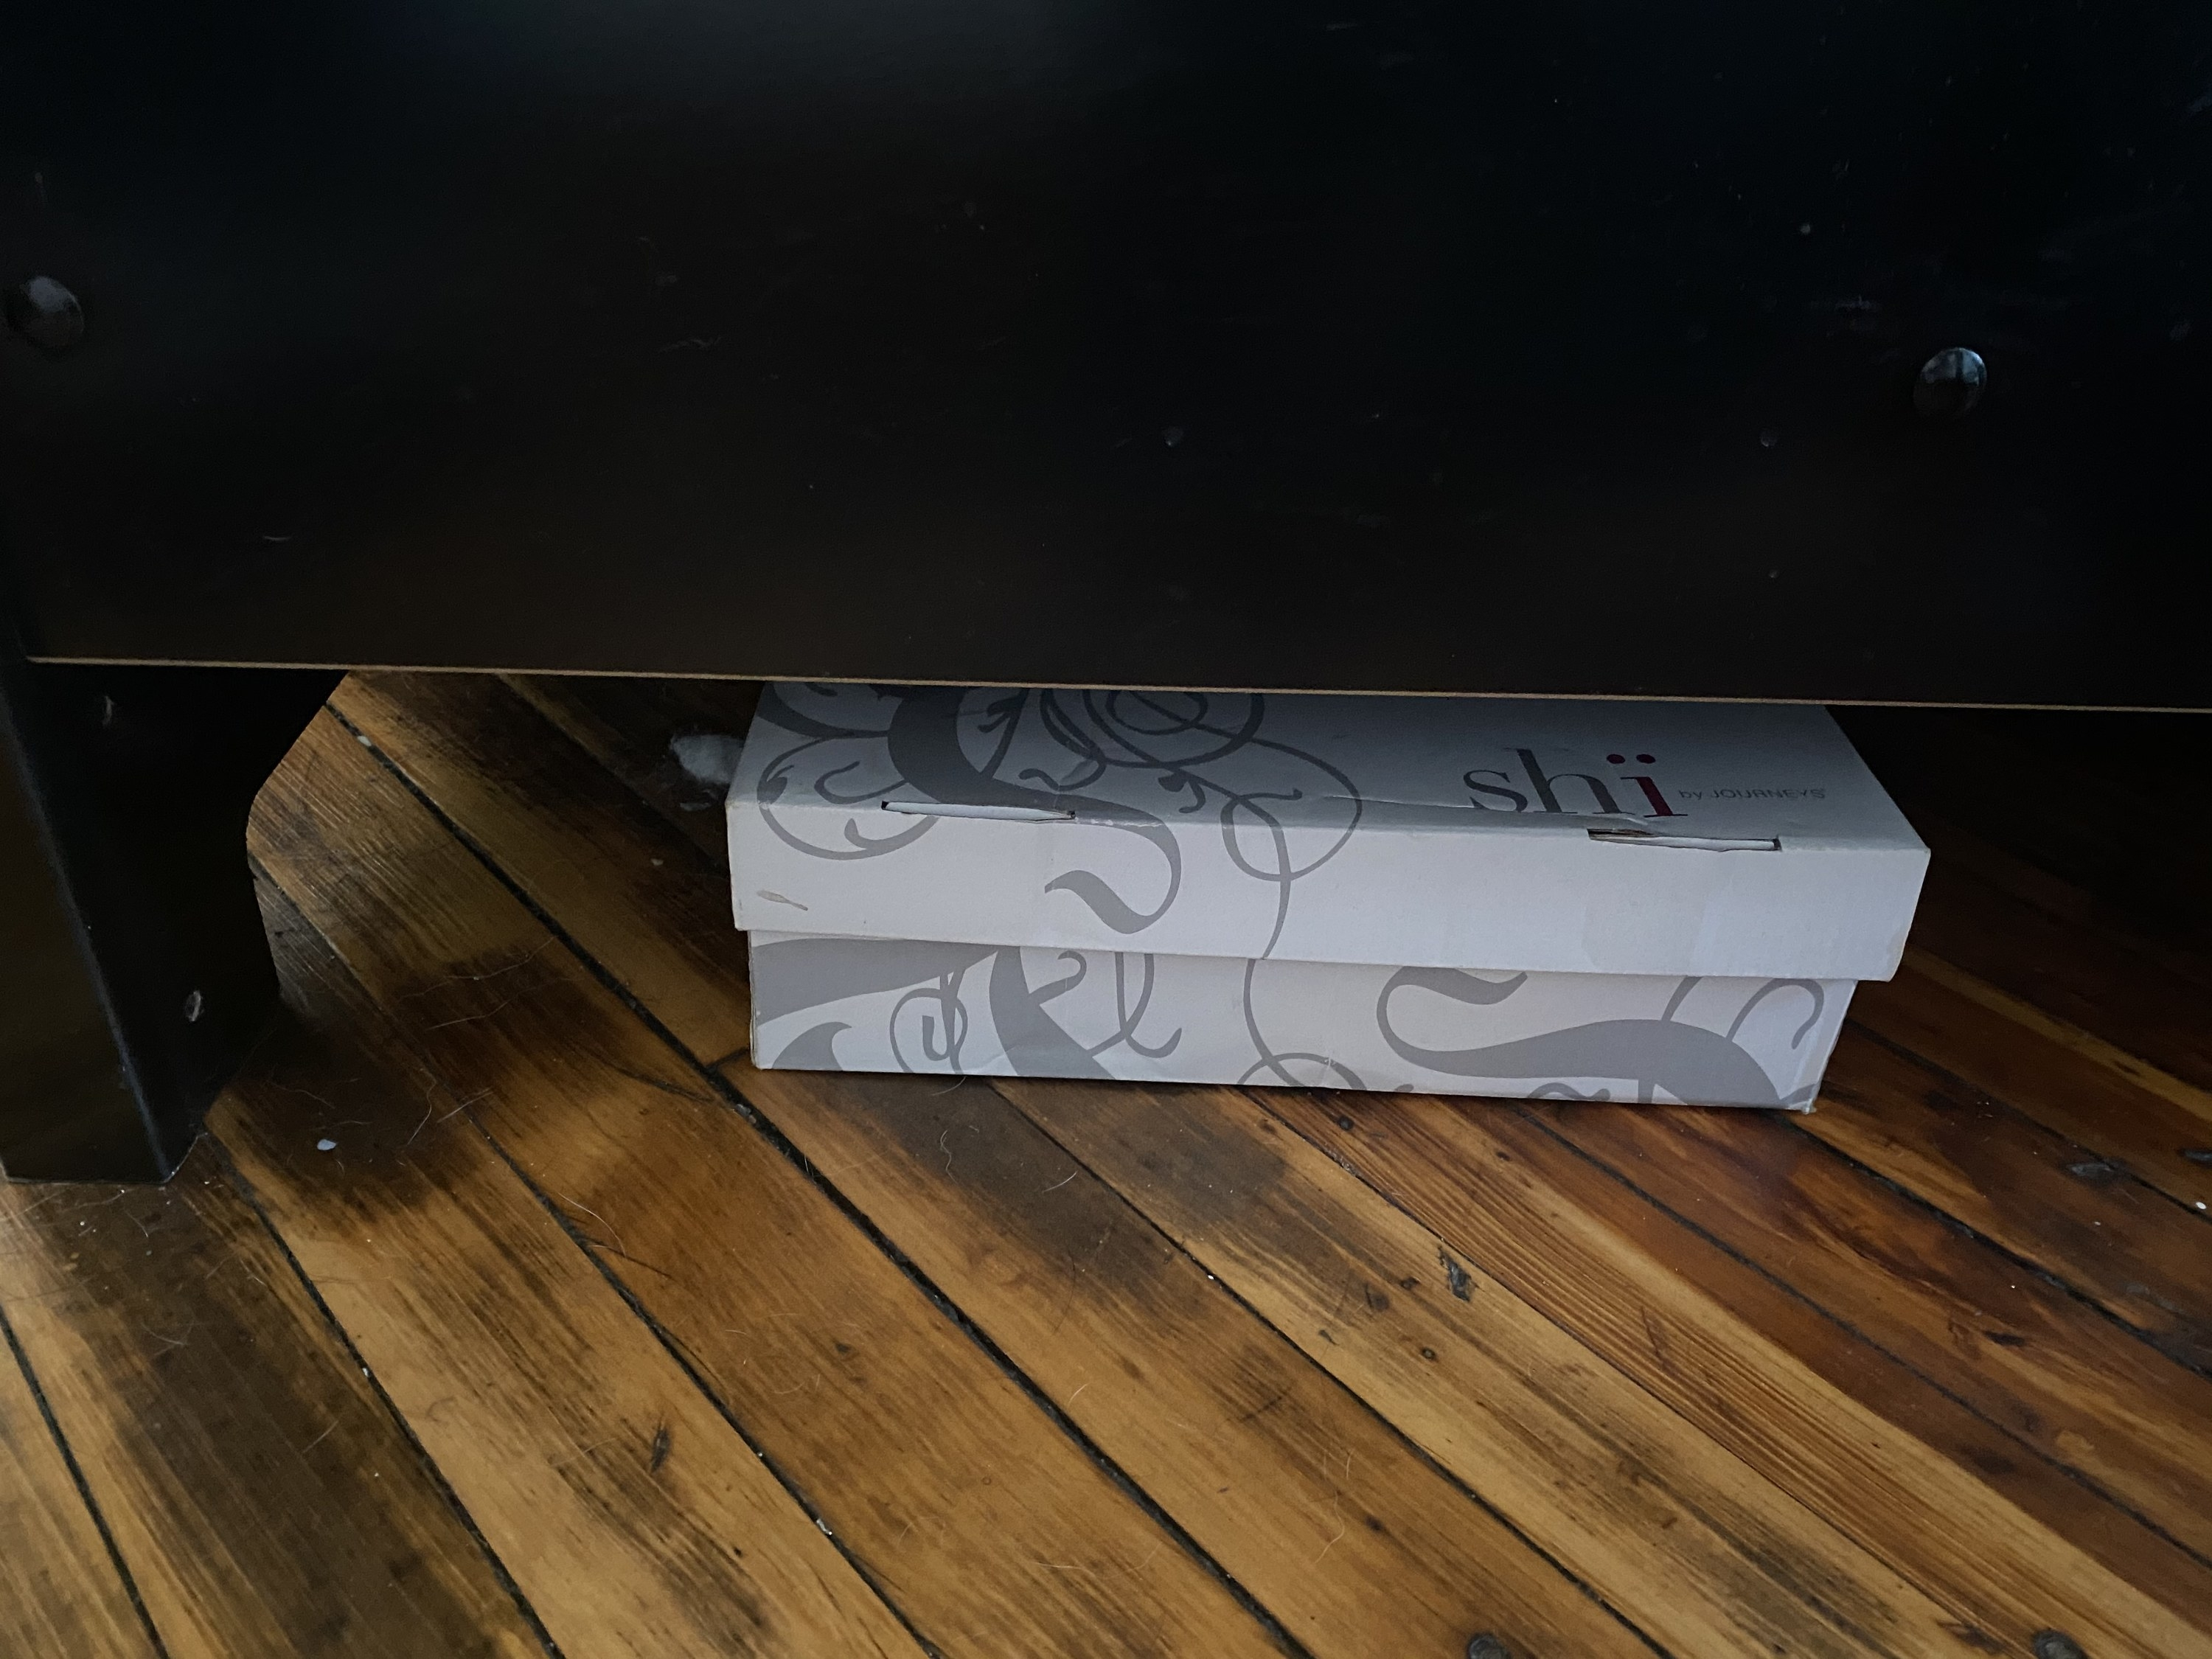 A white shoe box sits on a hardwood floor underneath a bed.